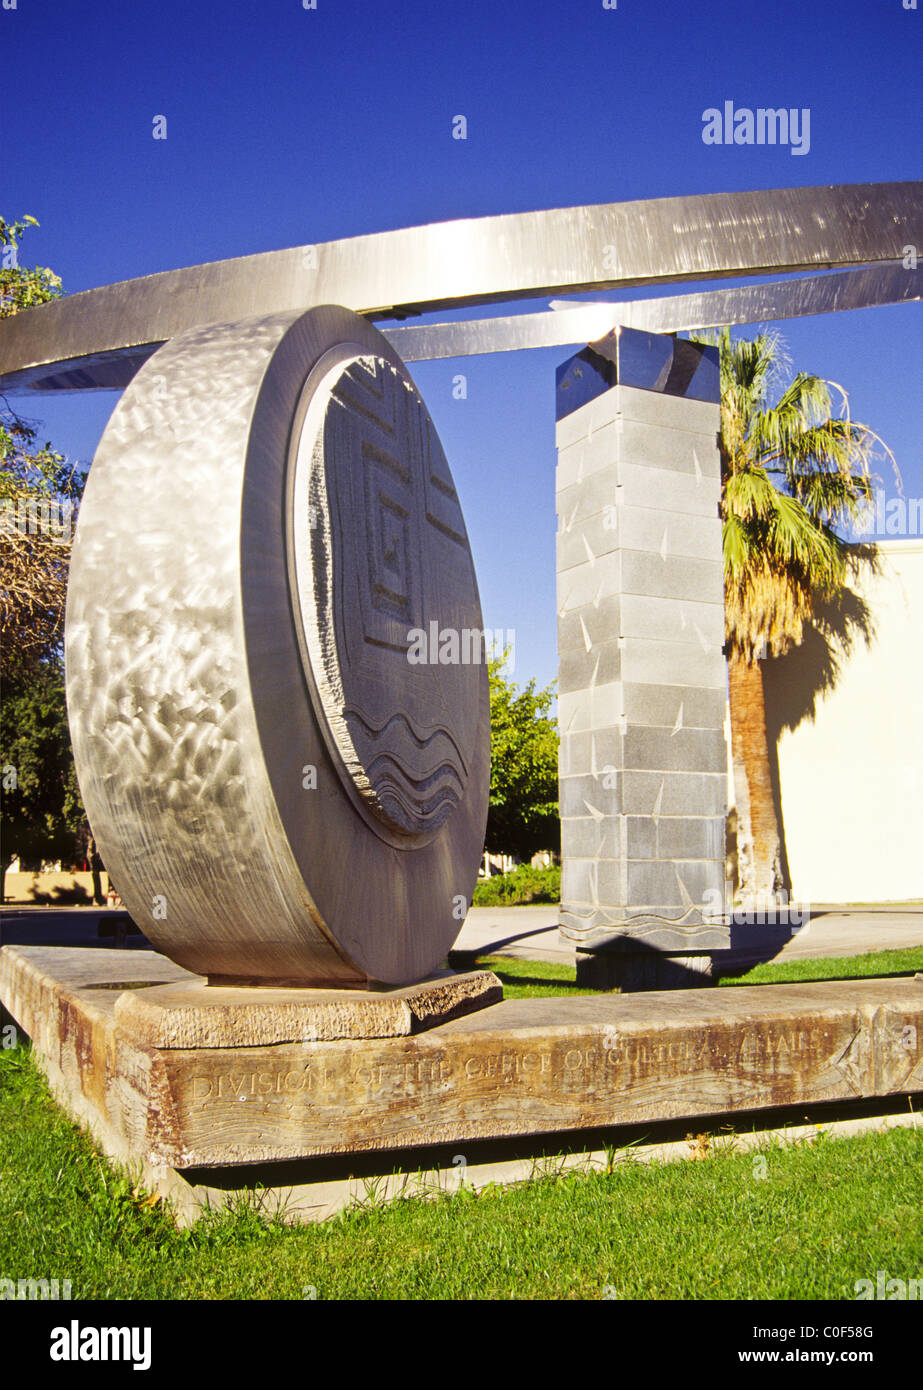 Impressive Sculpture Graces The Campus Of New Mexico State Stock Photo Alamy